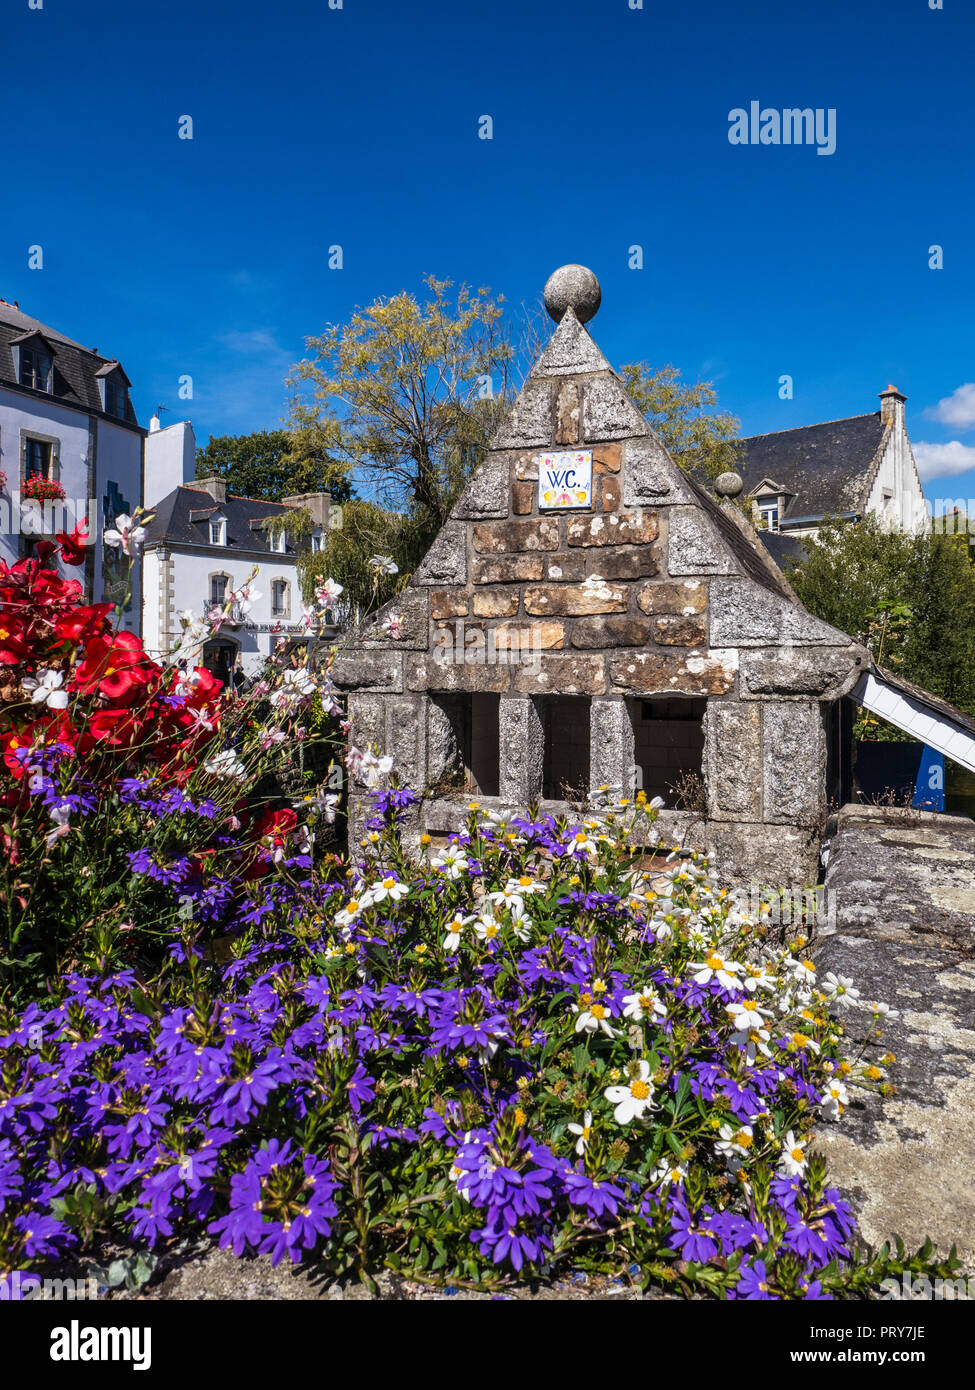 Historic quirky notable small stone WC lavatory toilet building on the banks of the River Aven in Pont-Aven Brittany France - Stock Image